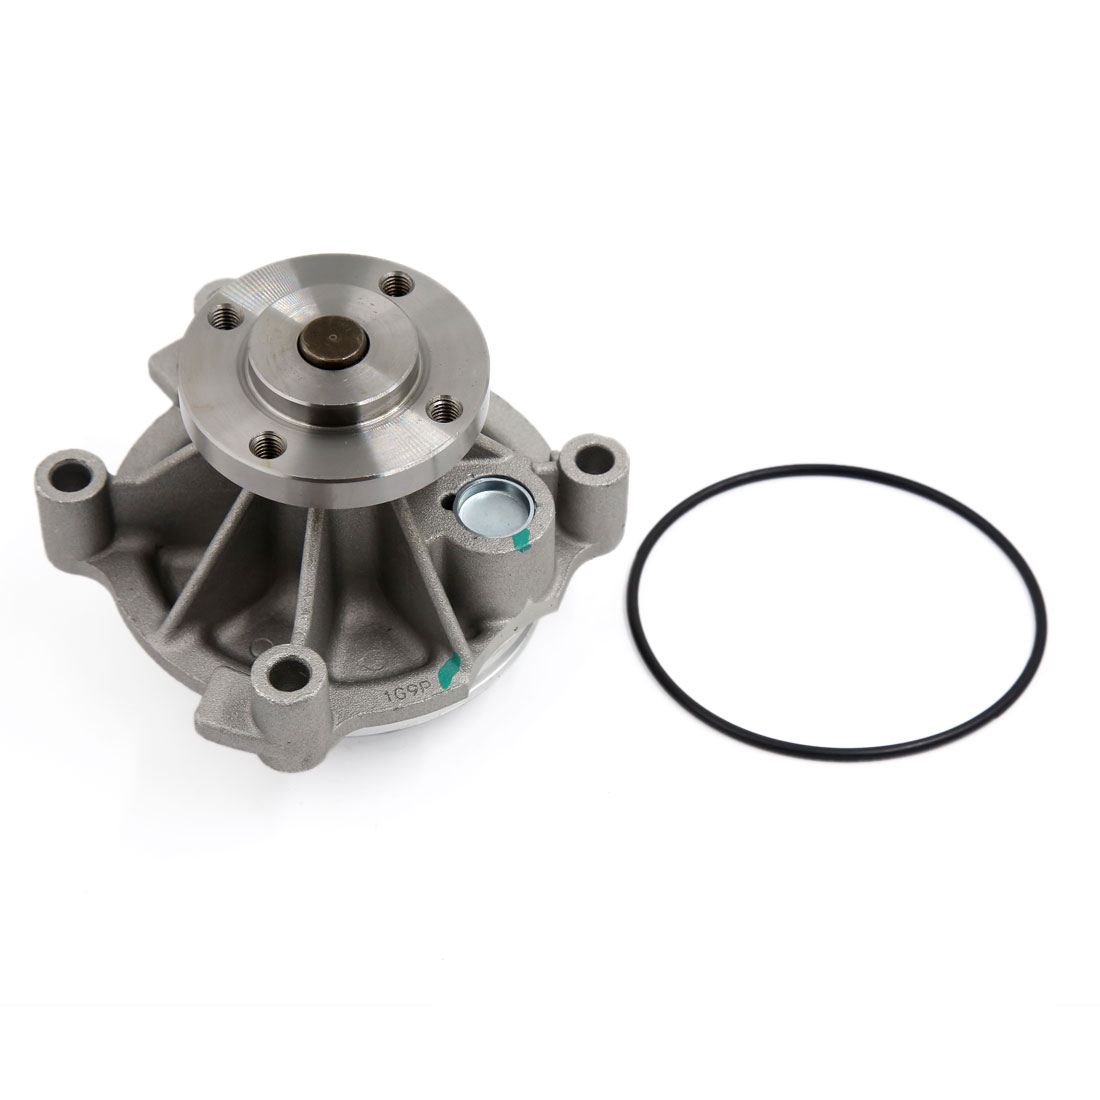 Replacement Water Pump Part For CROWN VICTORIA MUSTANG